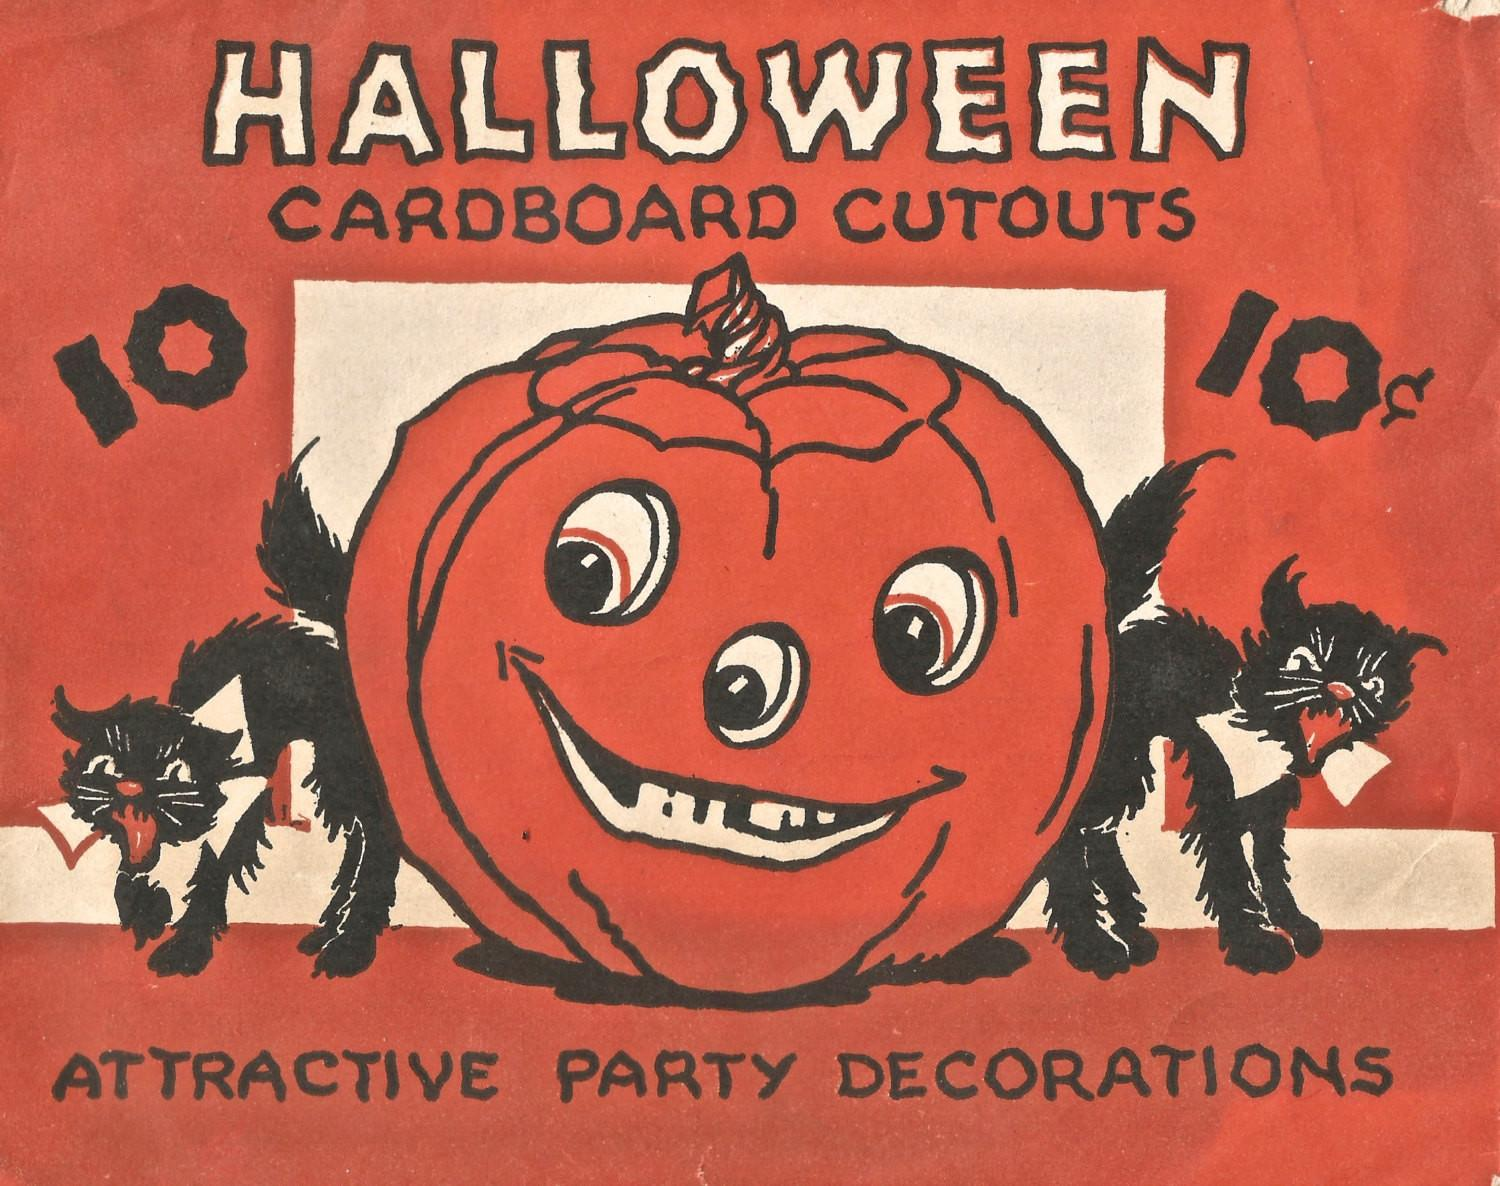 Vintage Halloween Party Decorations Jol Black Cat Digital